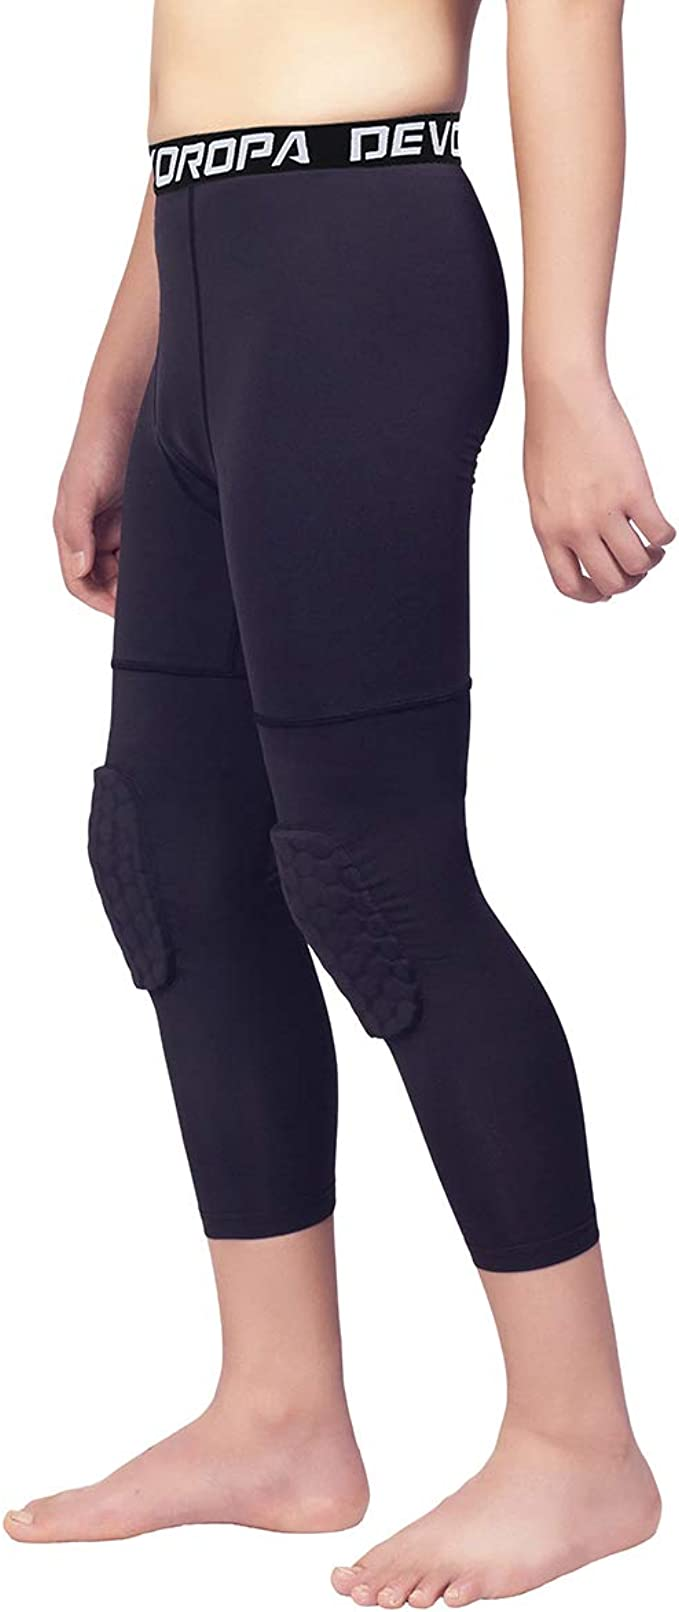 Breathable Sports Leggings Basketball Pantyhose Heencom Compression and Quick-Drying for Boys and Girls